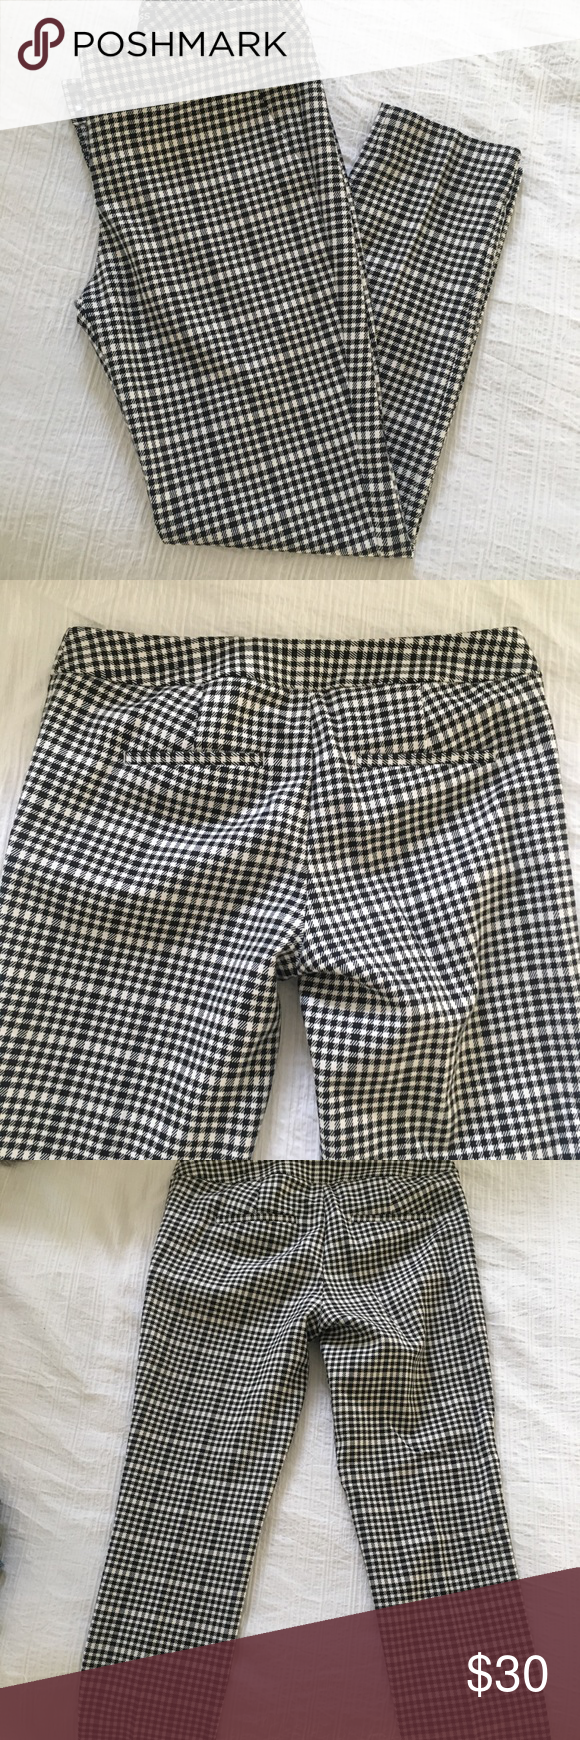 Express Columnist Pants Gingham print columnist pants by Express! Size 2R and could also fit a 4! Love these for work! Express Pants